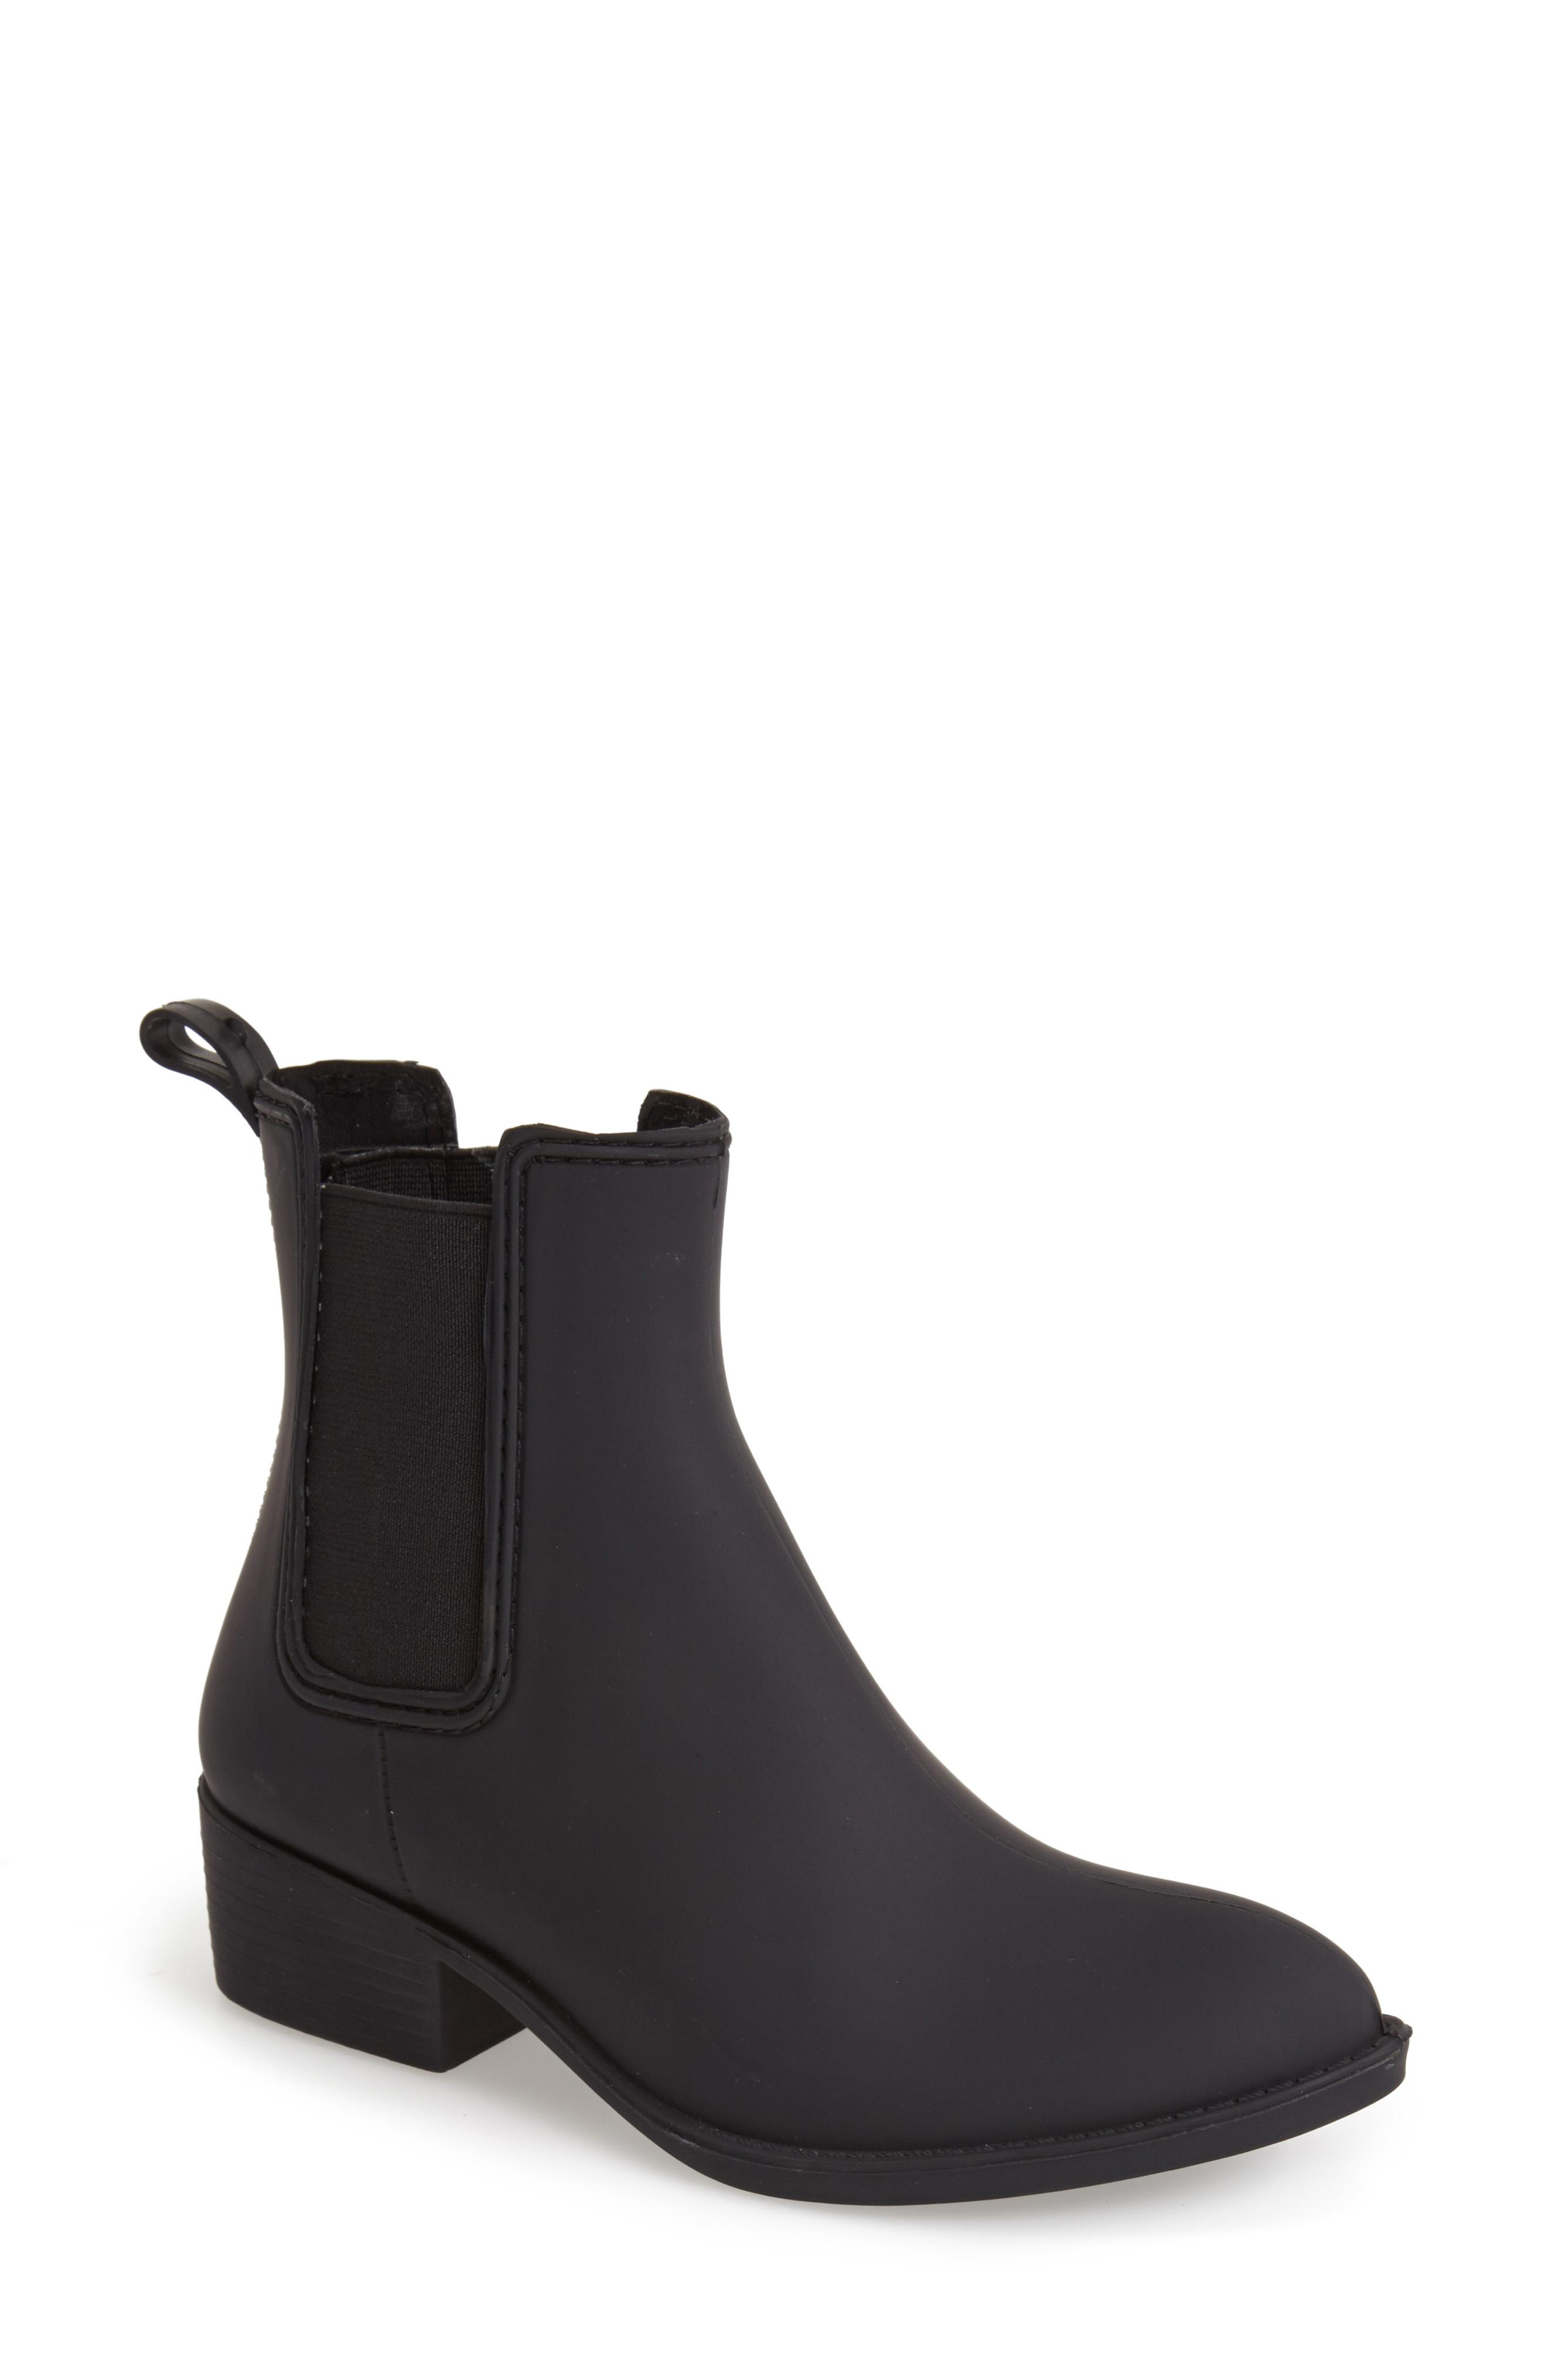 The 5 most stylish rain boots to wear in the rain | Seattle Refined